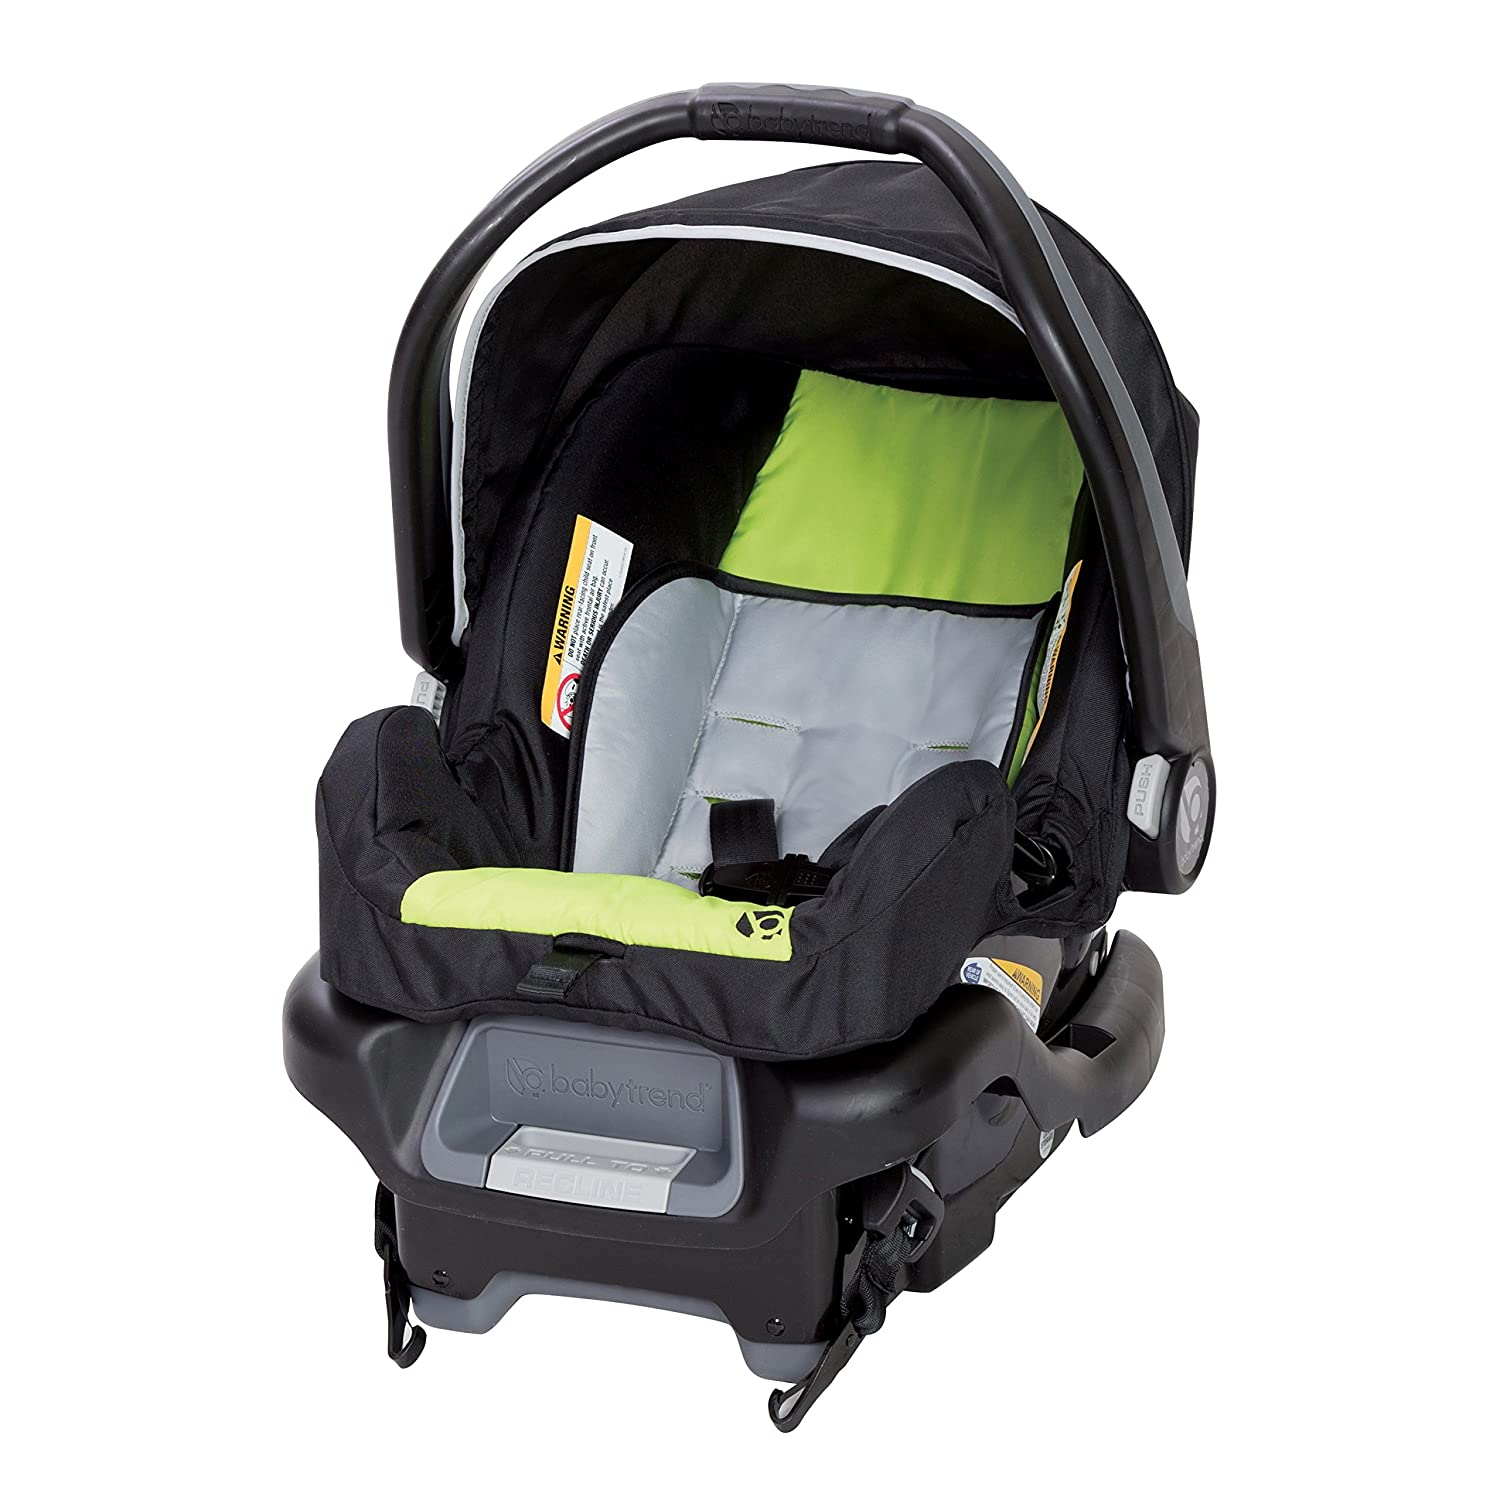 CAR SEAT Replacement infant crotch buckle